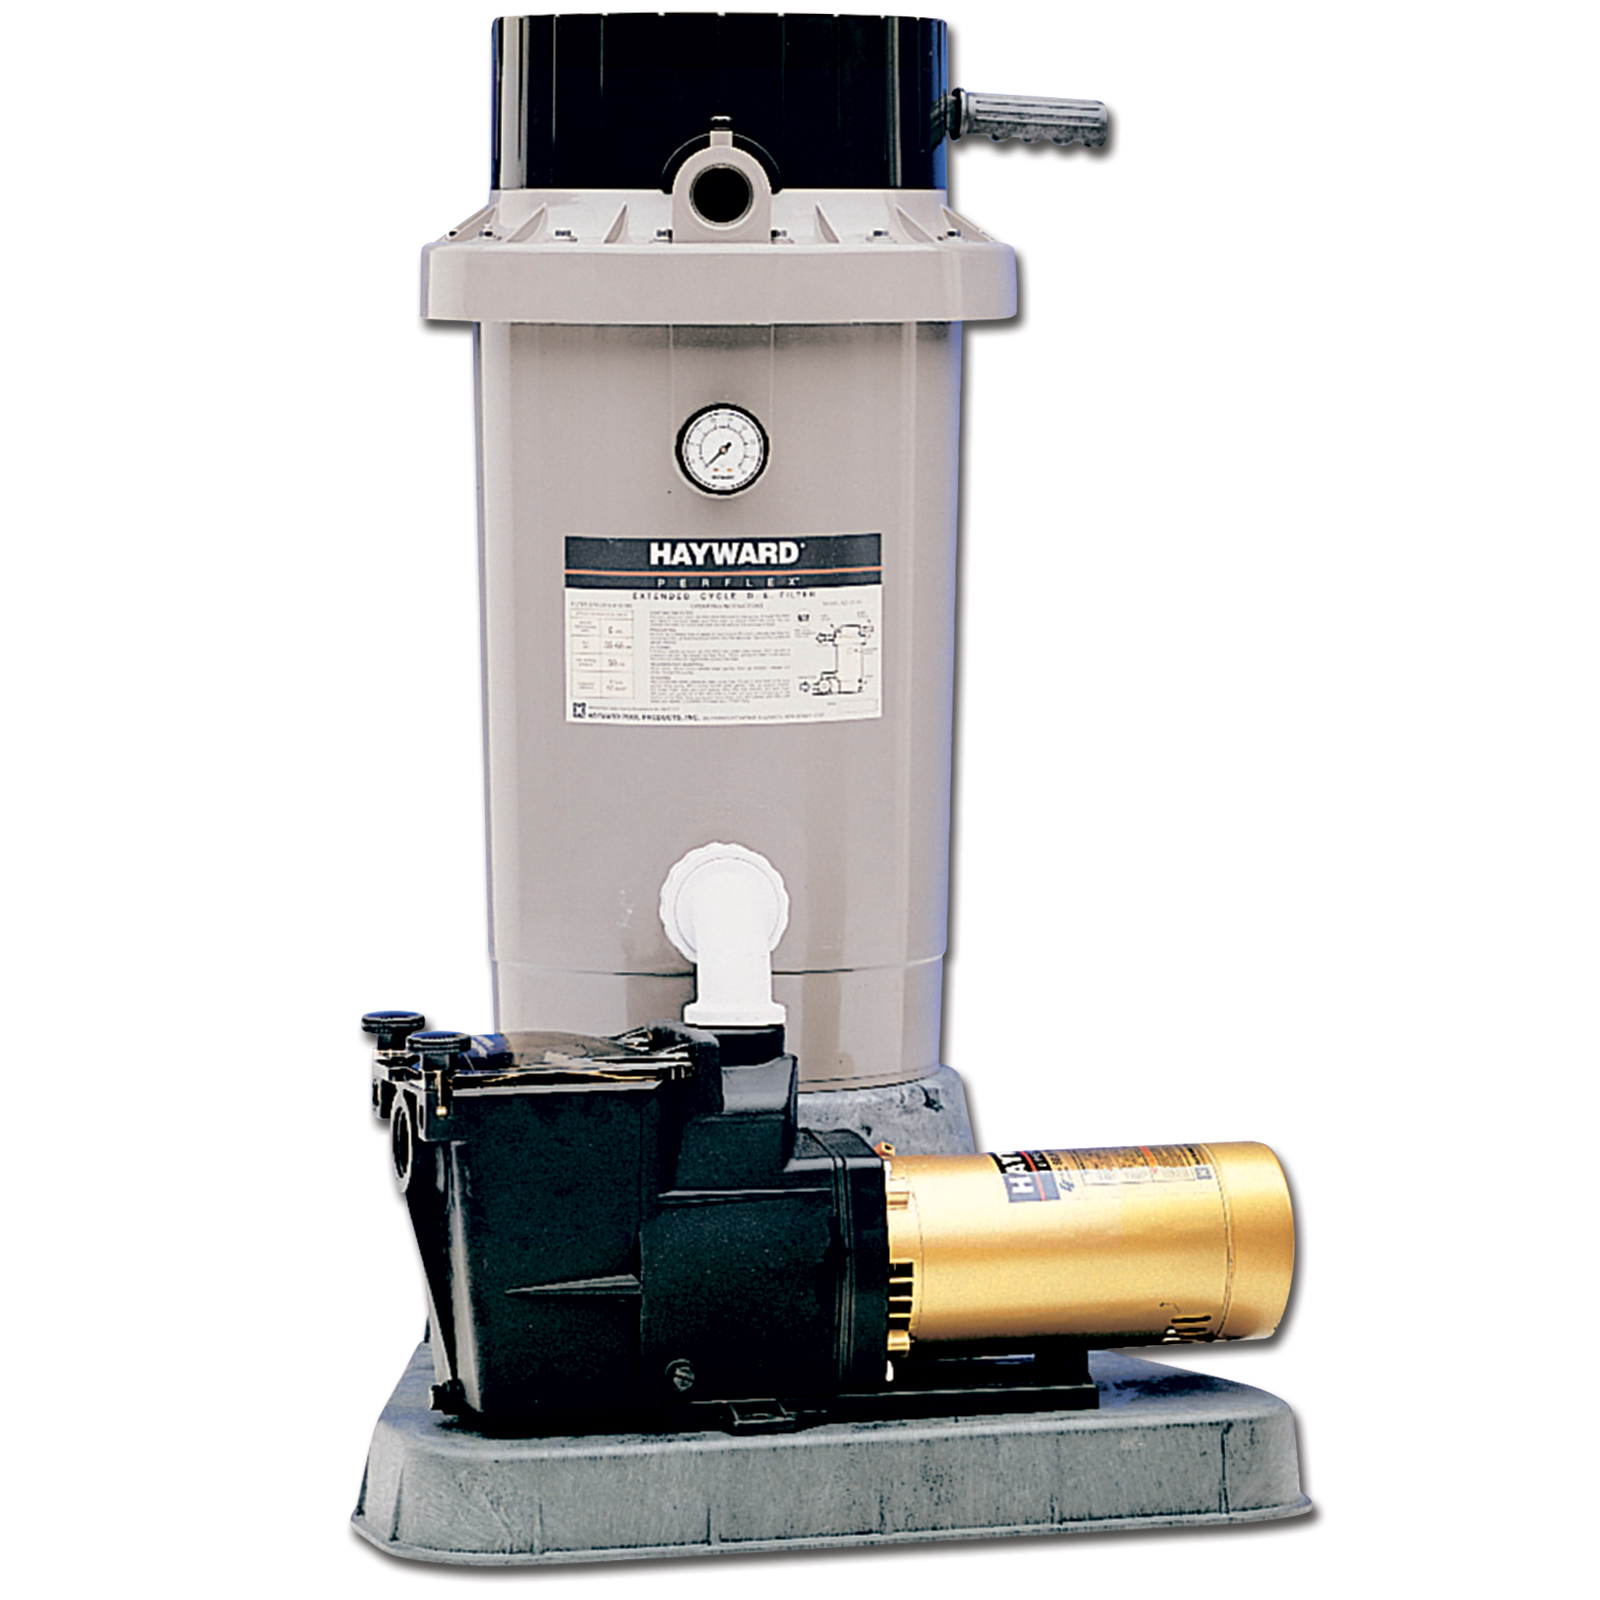 Hayward EC75 Extended Cycle DE In Ground Pool Filter System with 1 HP Pump